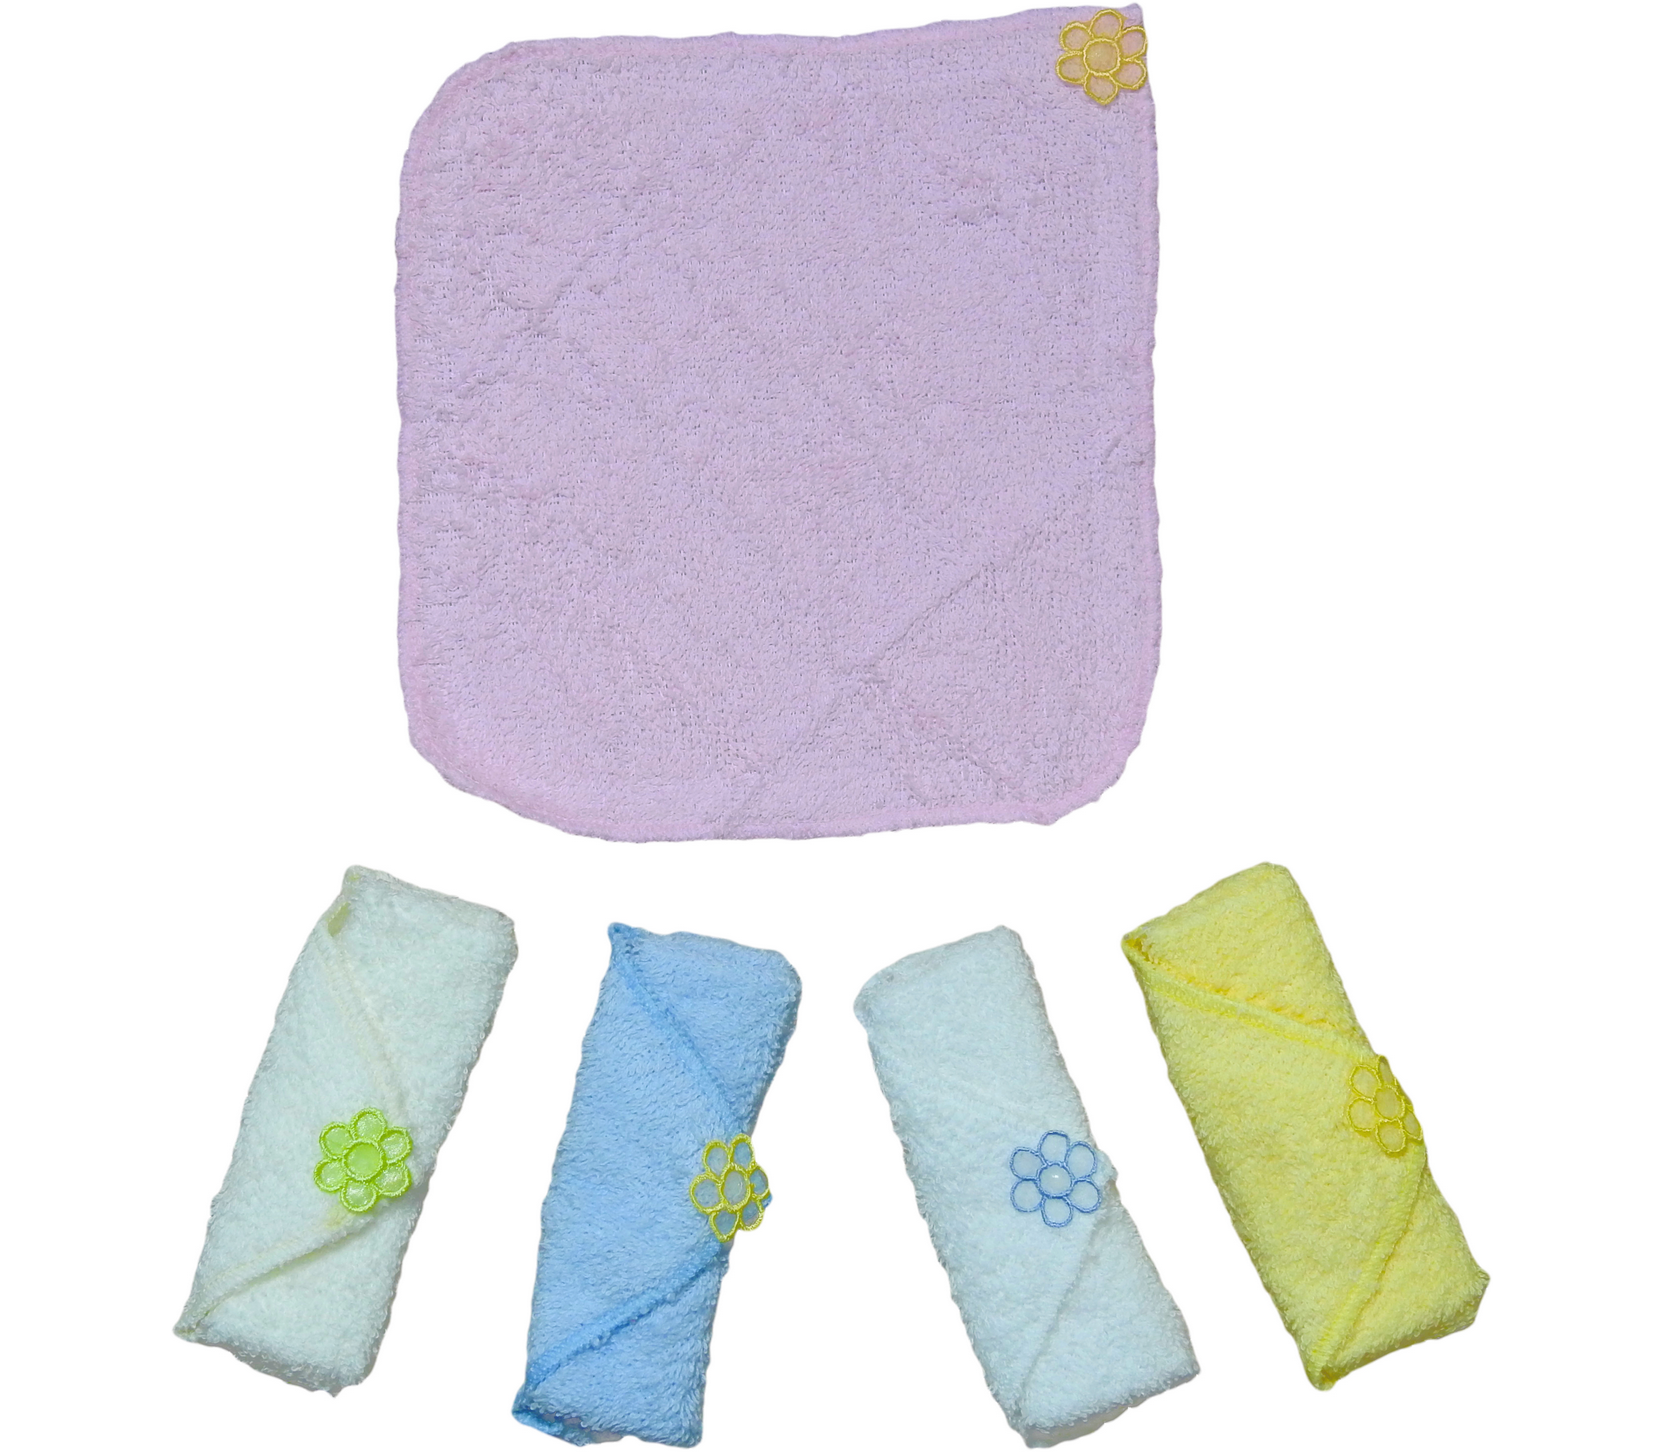 423 Wholesale handkerchief for girl baby products